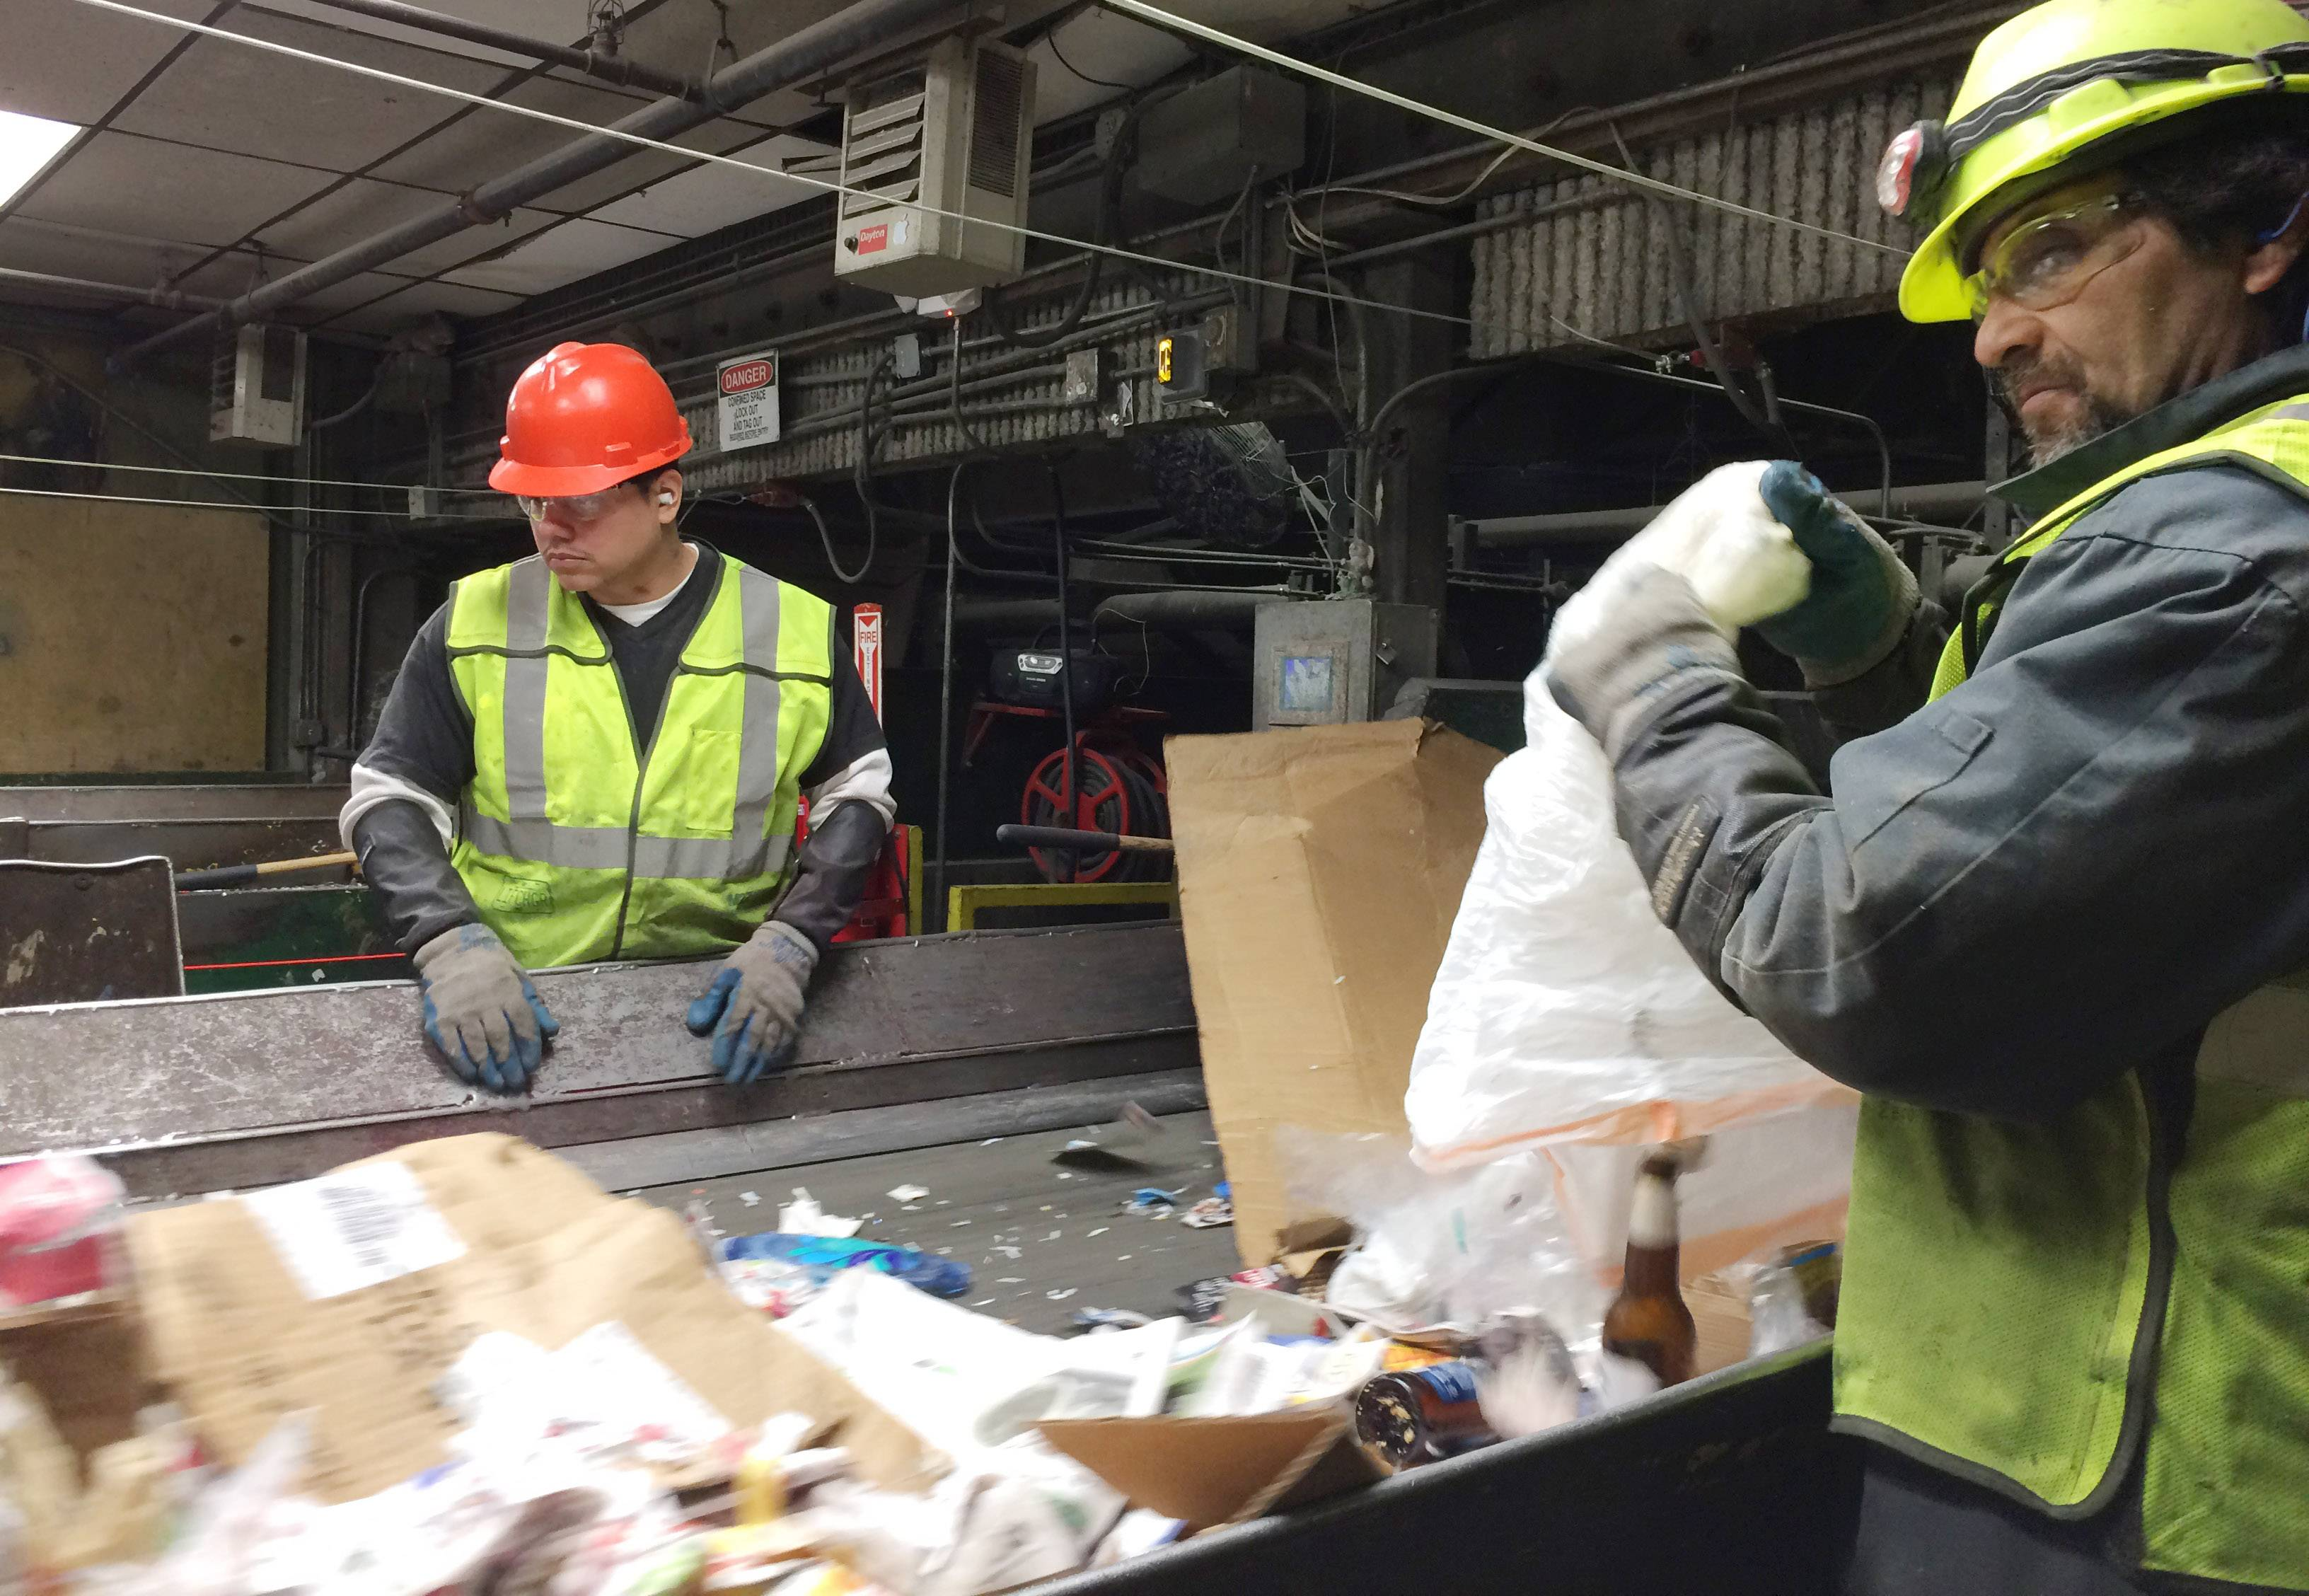 Are you recycling right? Waste haulers say when it doubt, throw it out